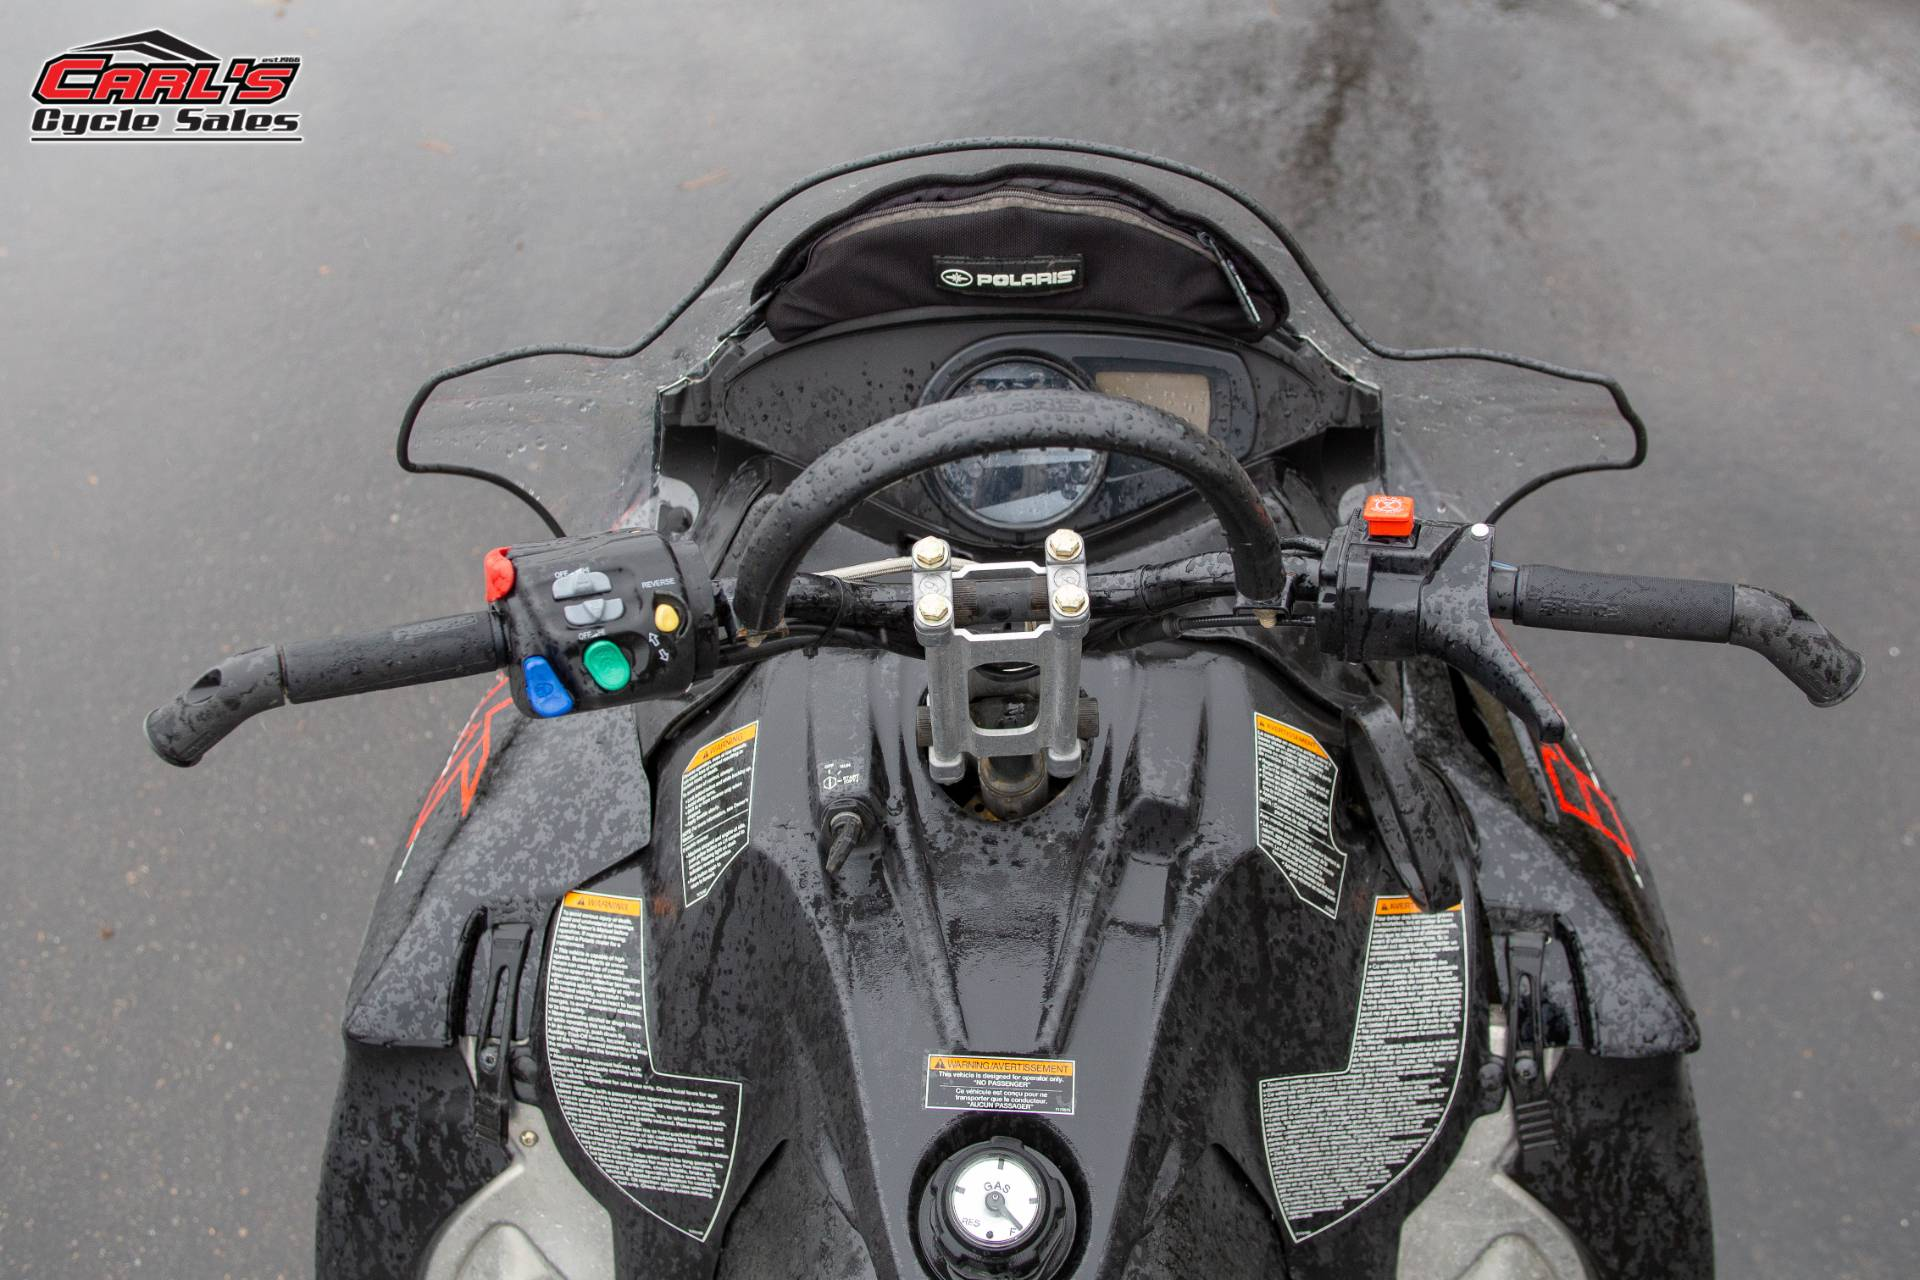 2009 Polaris 700  RMK 155 in Boise, Idaho - Photo 7